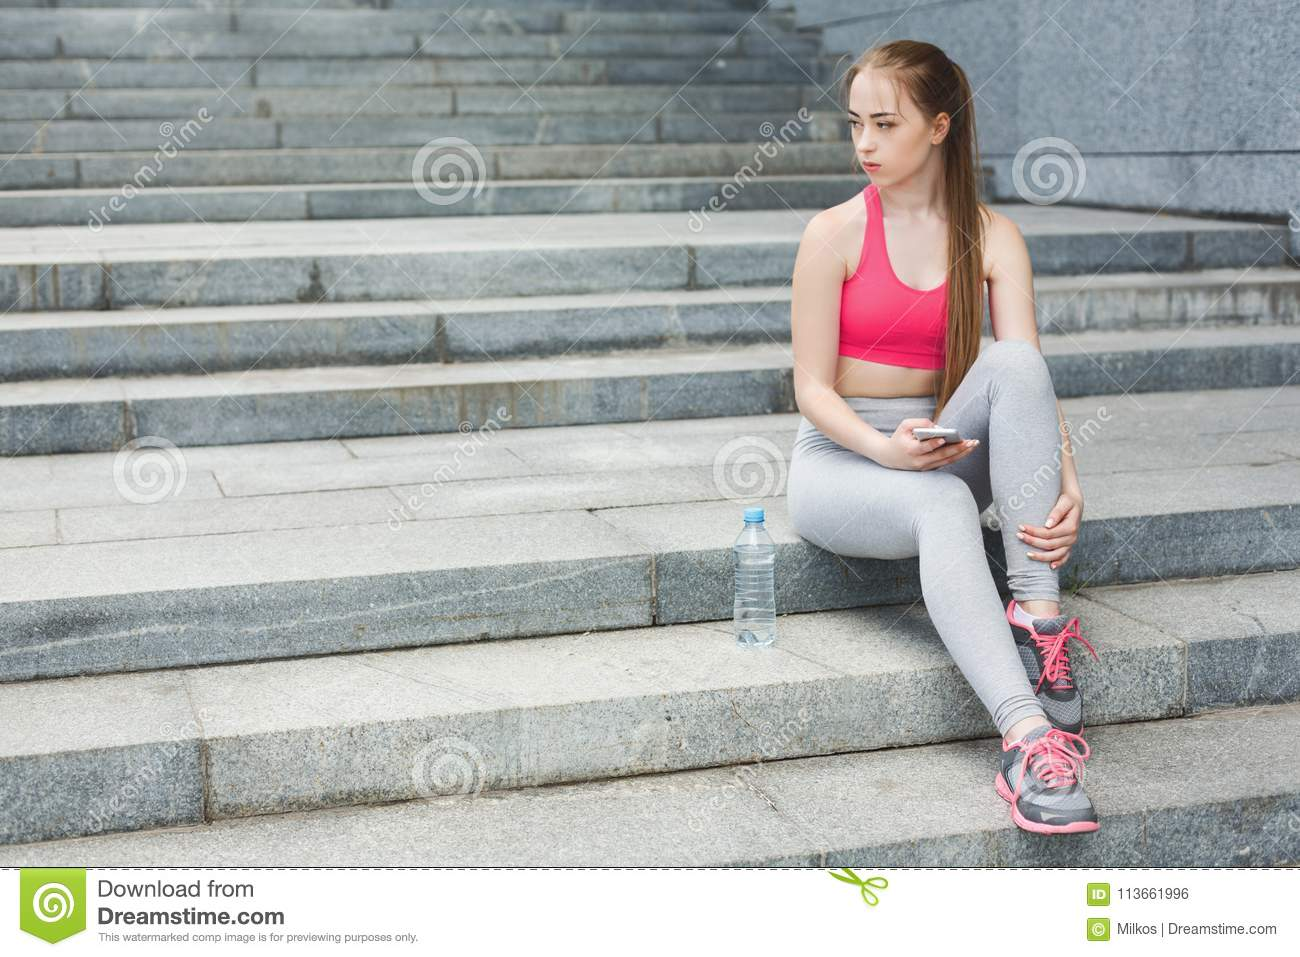 Woman runner is having break